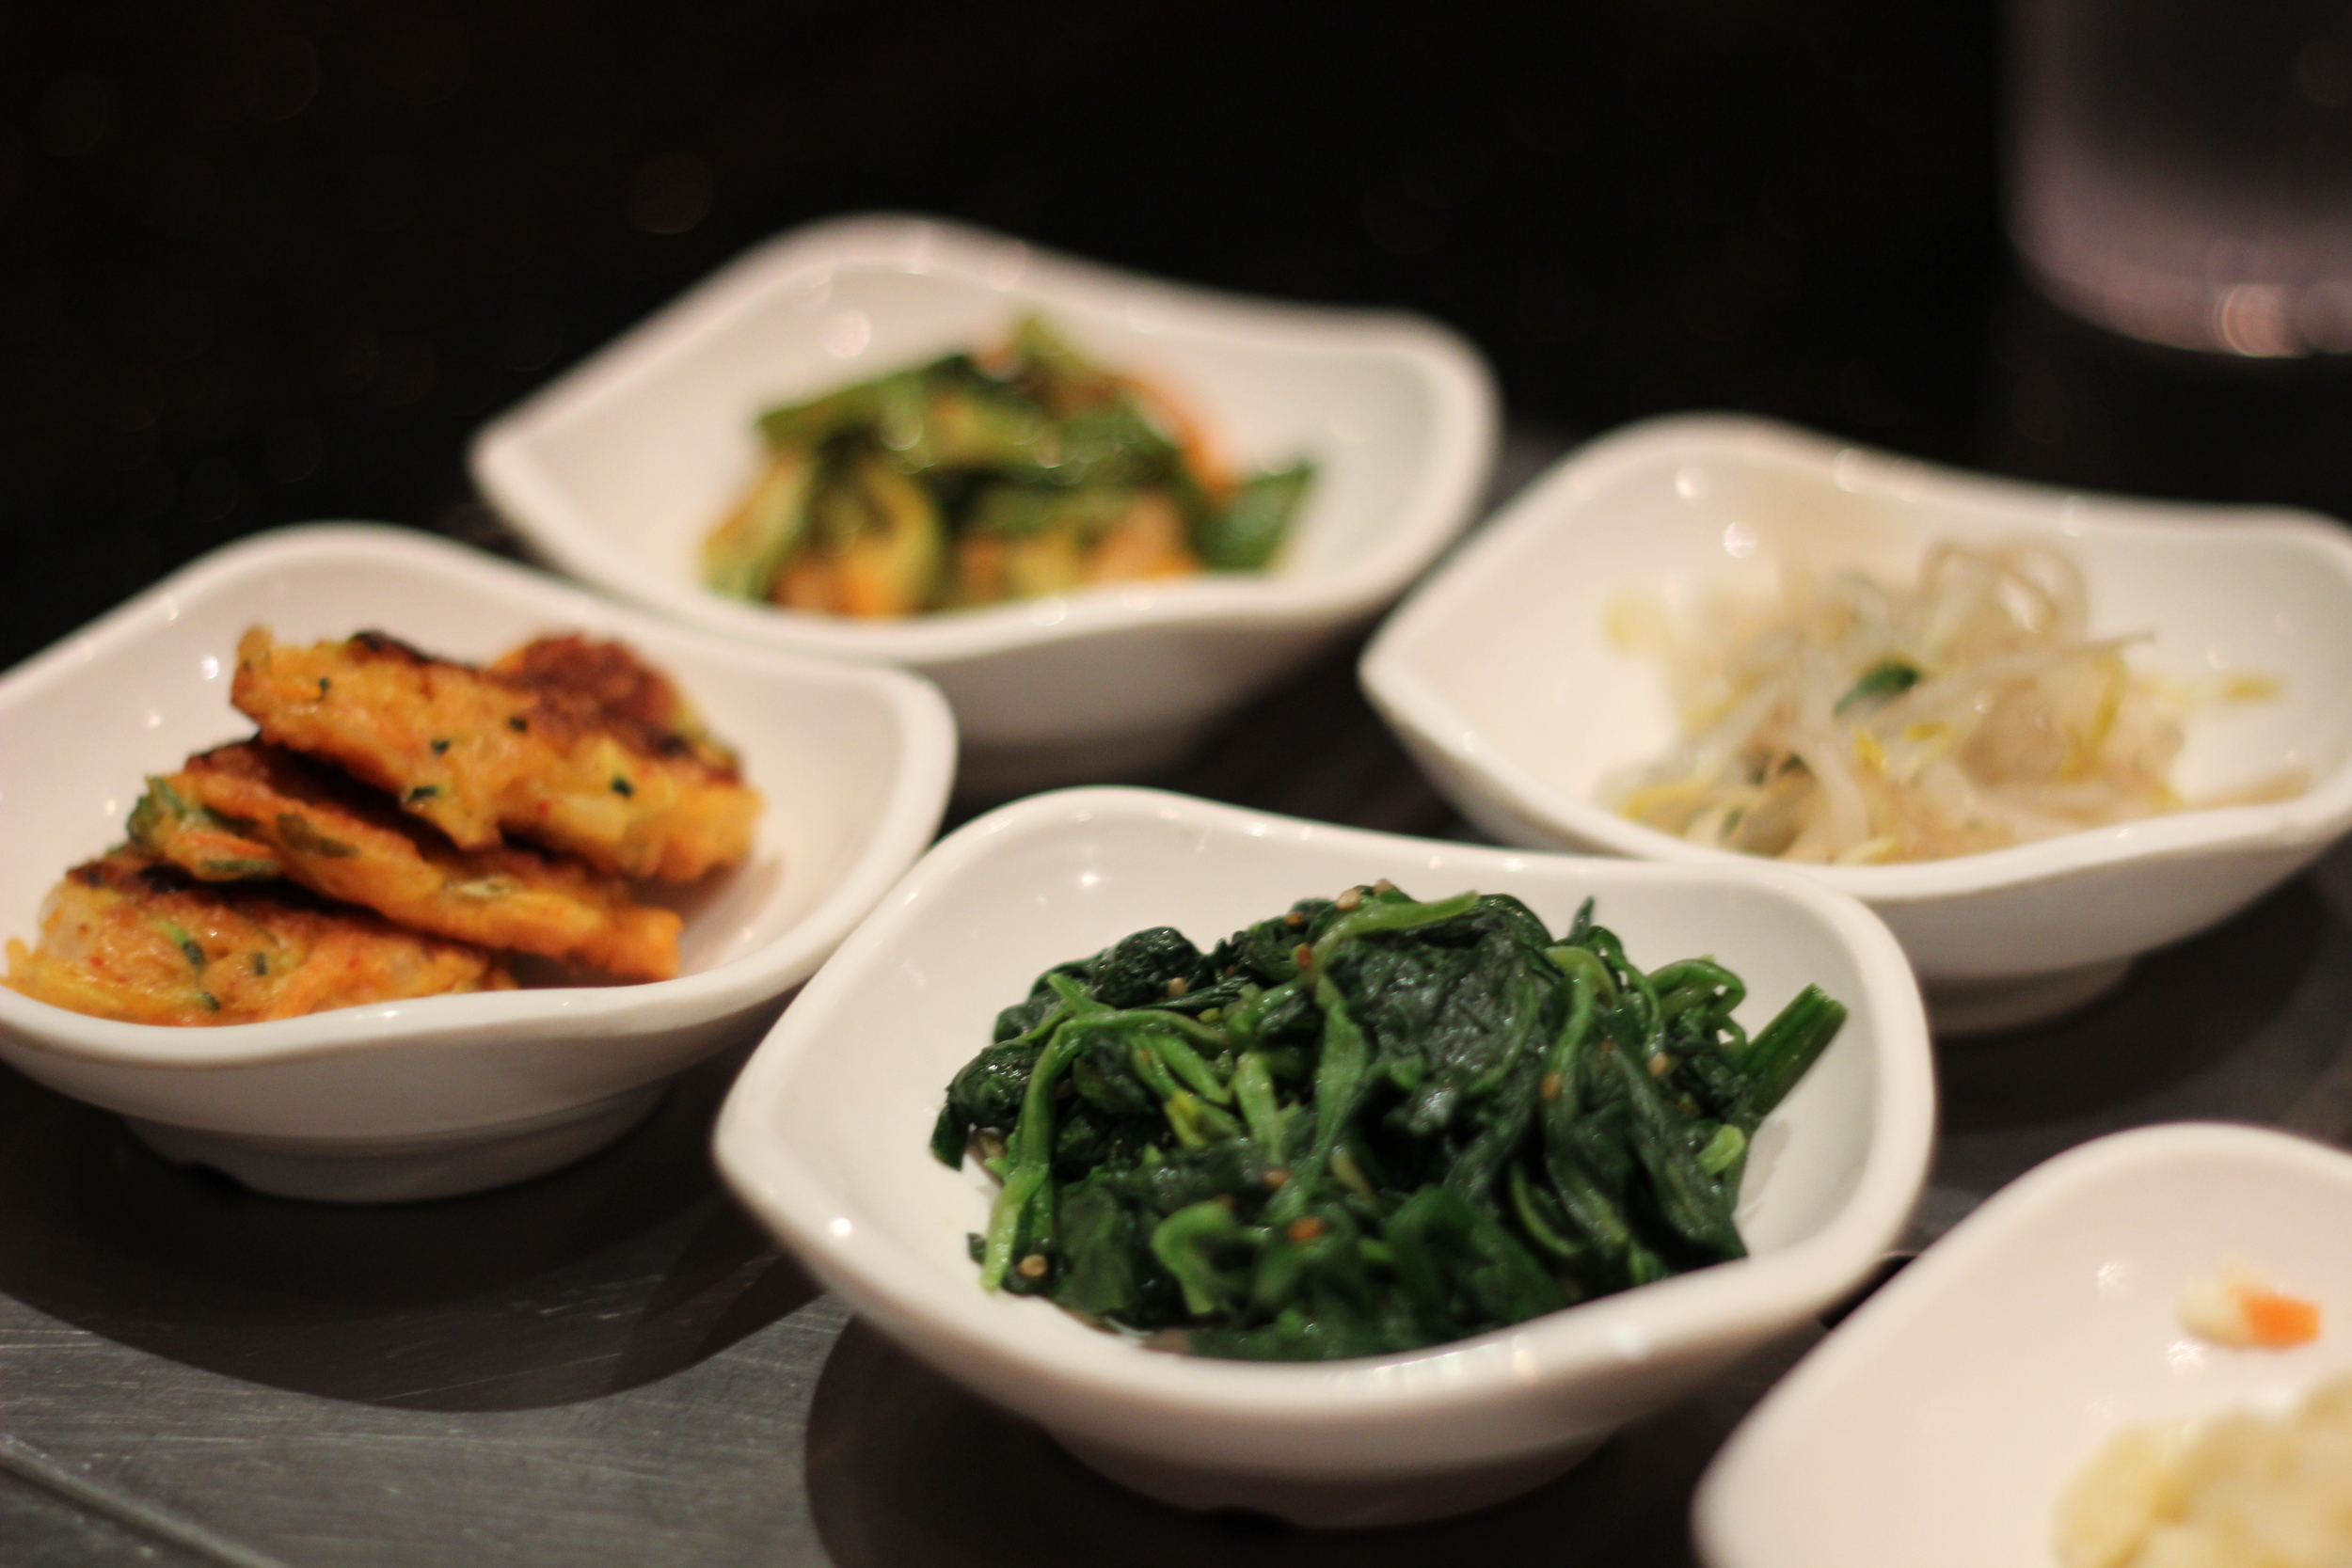 Sautéed spinach, kimchi pancakes and bean sprouts